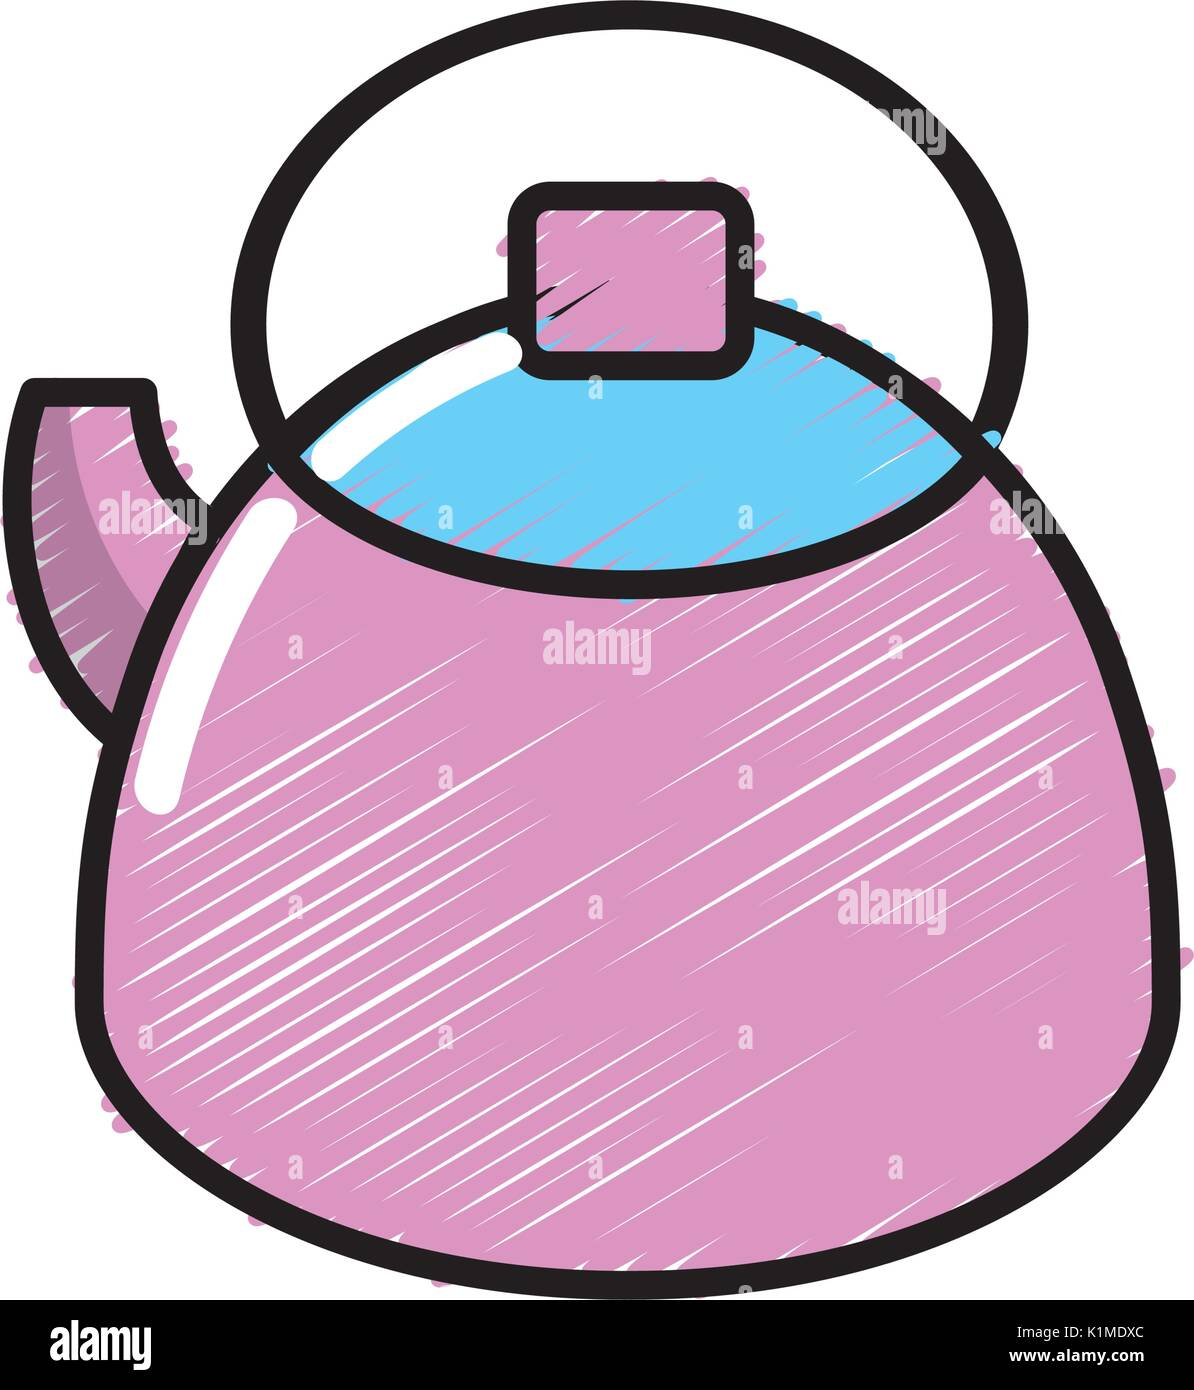 teapot kitchen utensil object to cuisine - Stock Vector